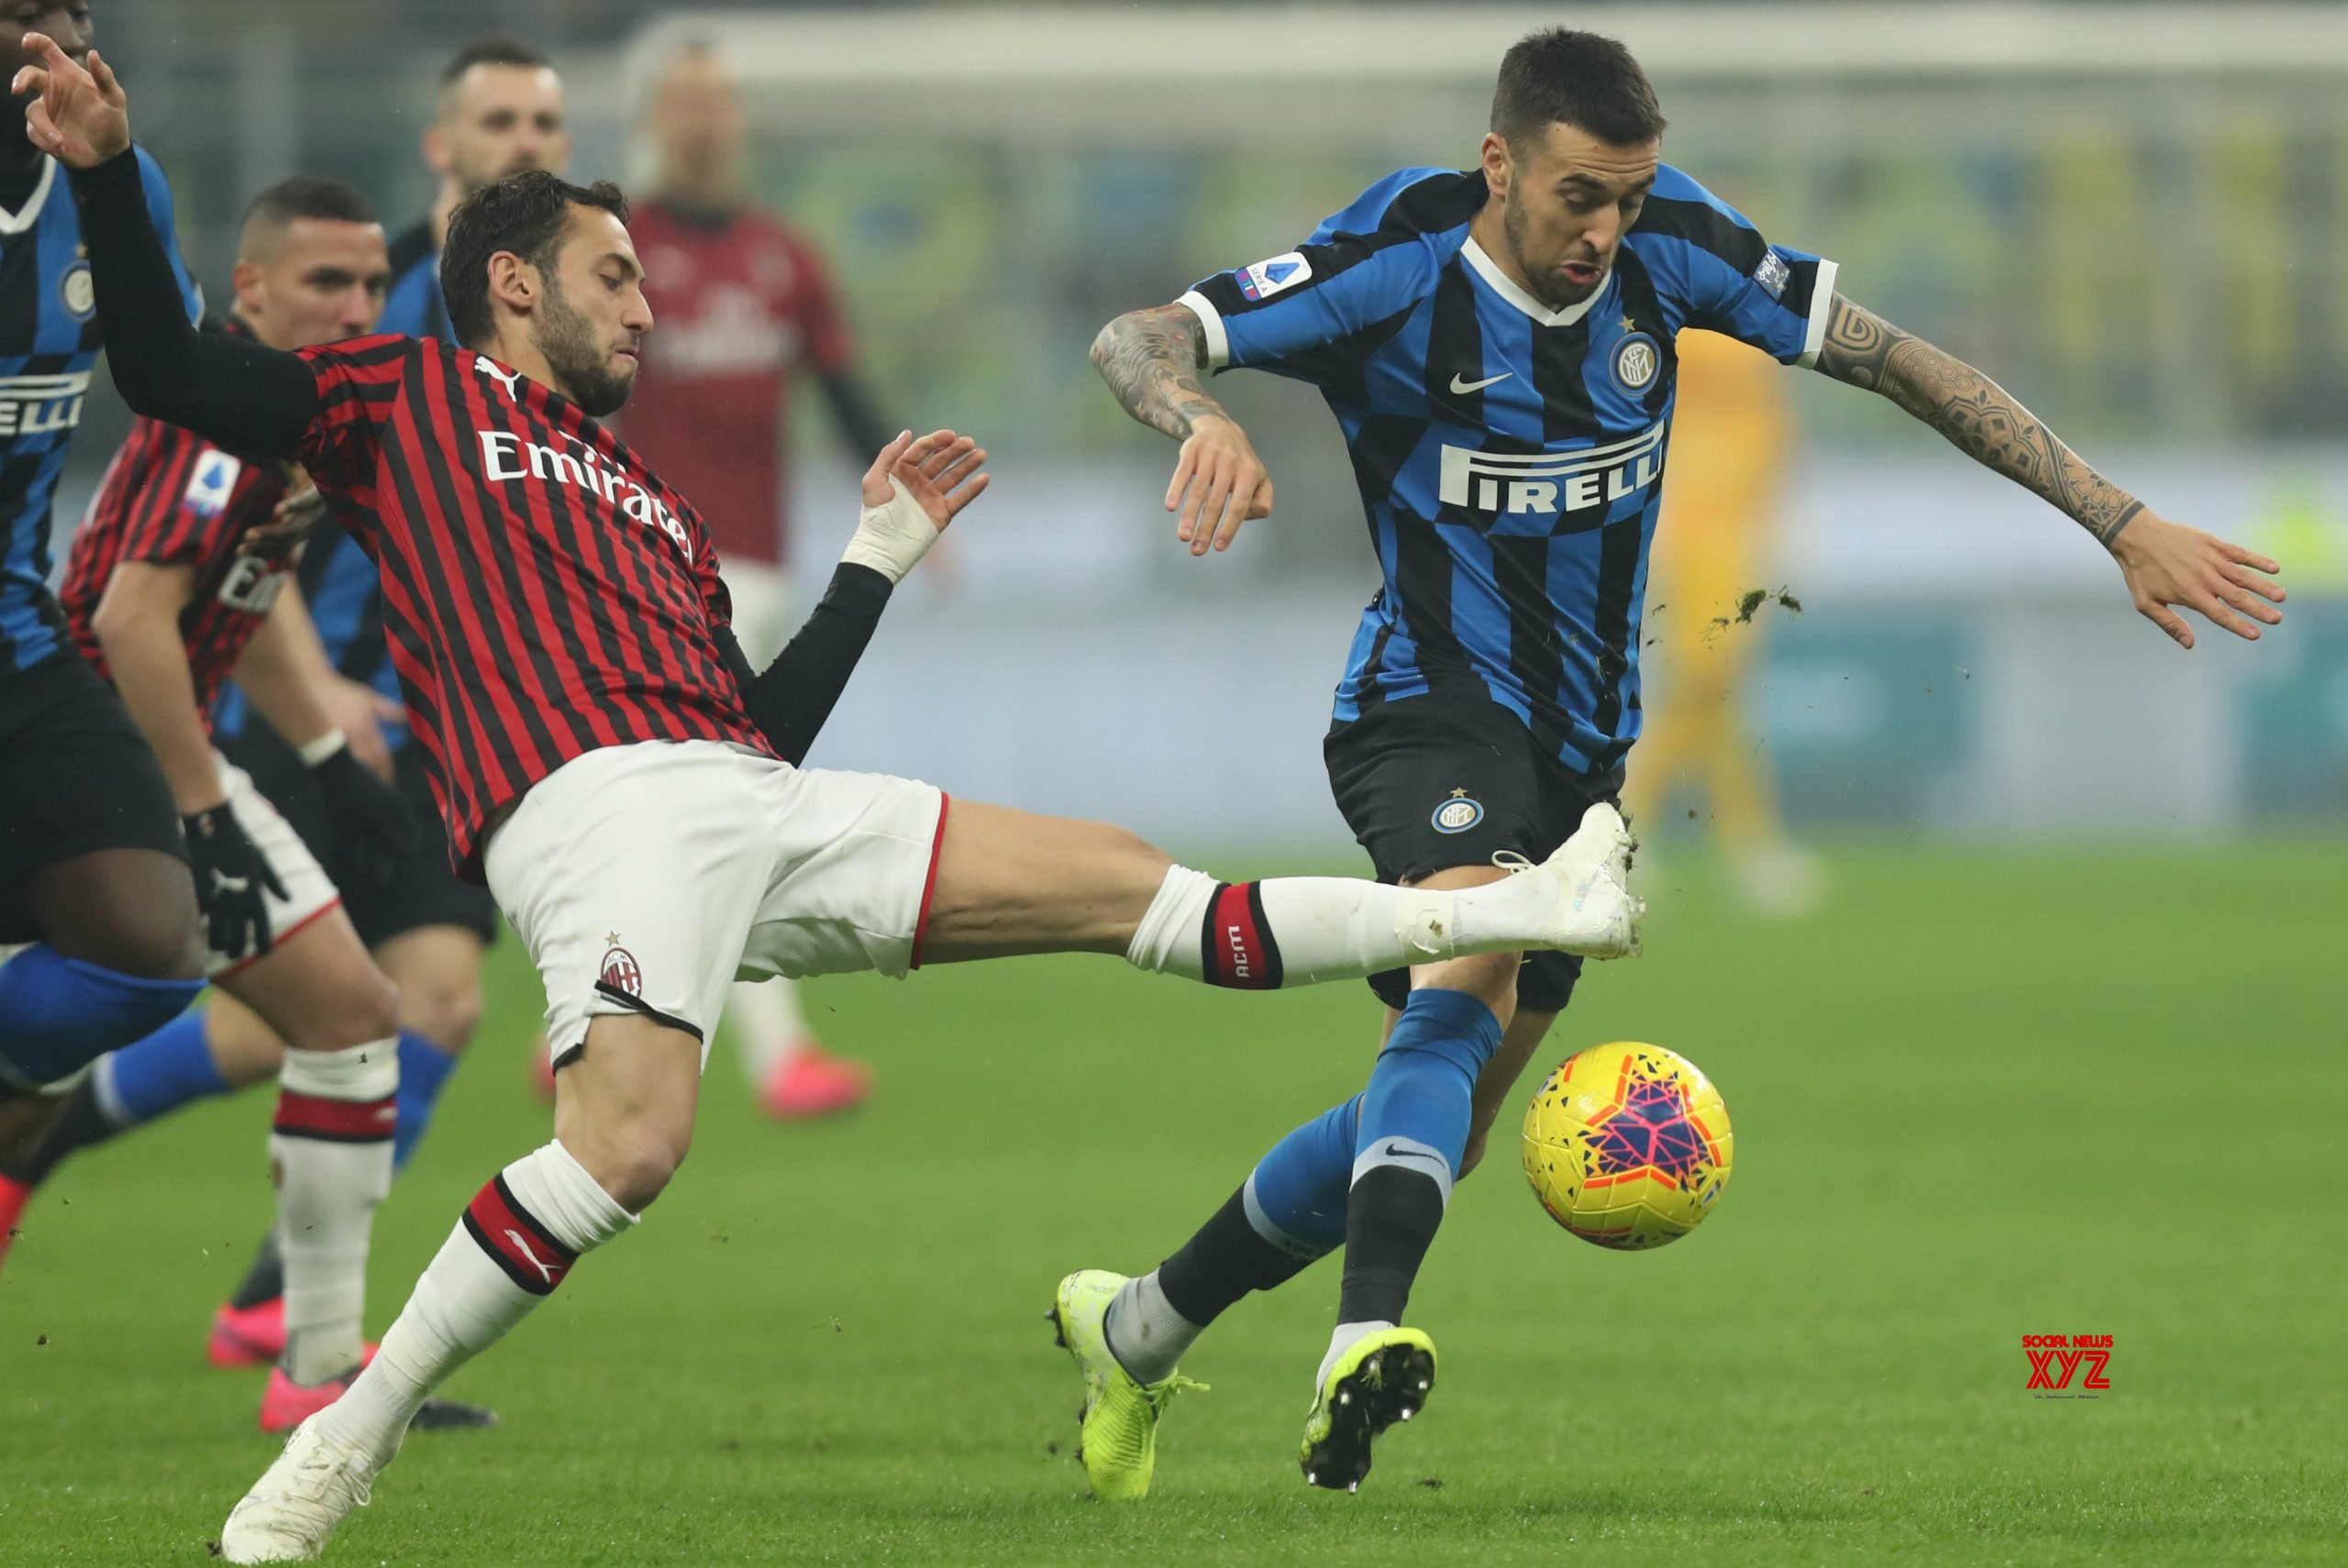 ITALY - MILAN - FOOTBALL - SERIE A - INTER VS MILAN #Gallery